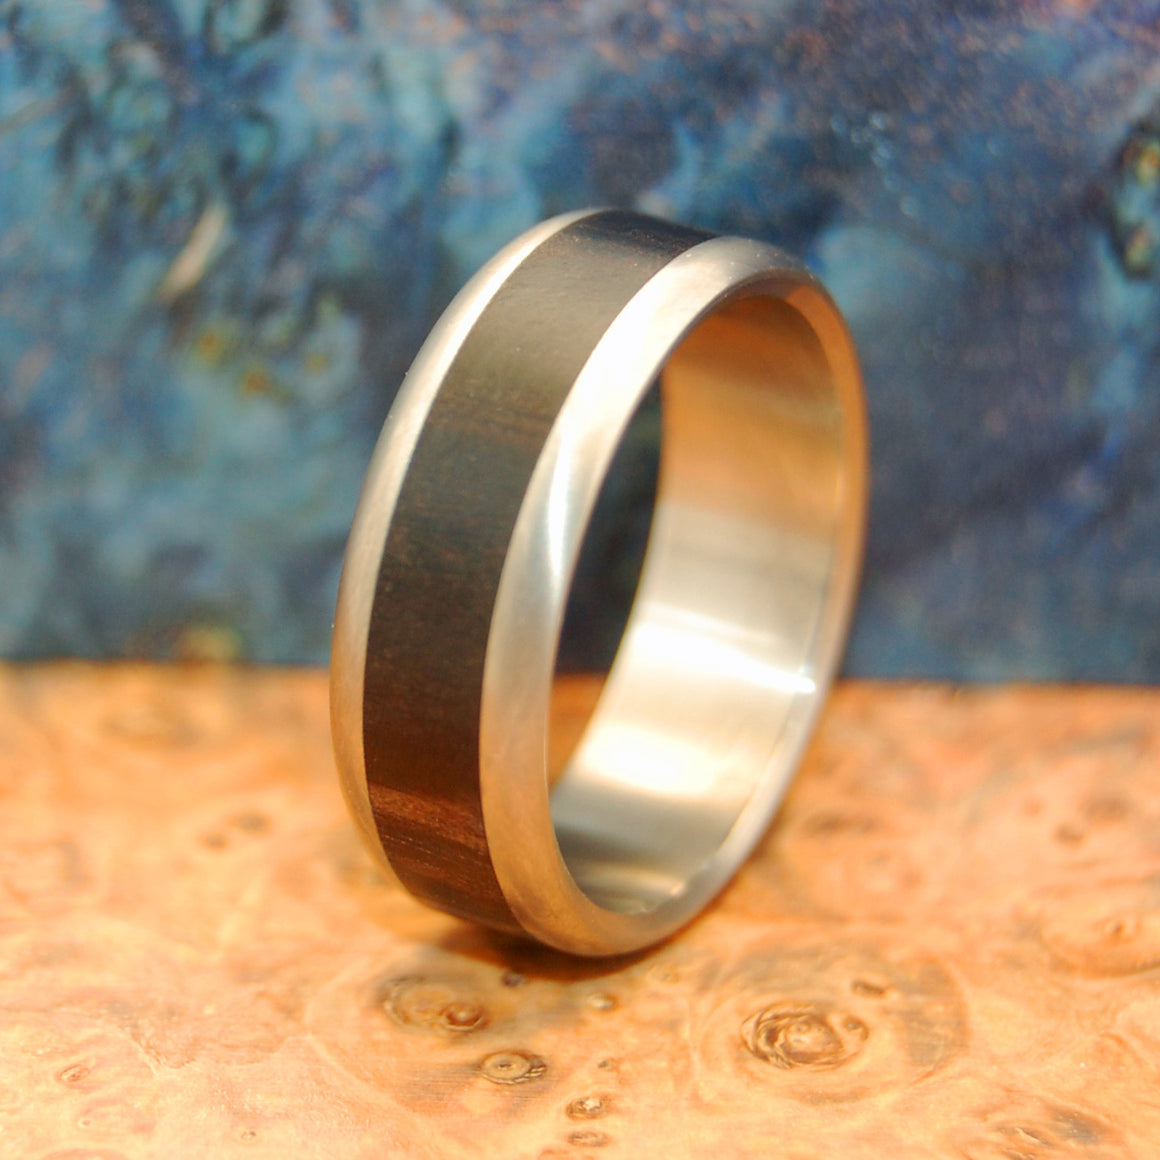 Tunde | African Ebony Wood and Titanium Wedding Ring - Minter and Richter Designs